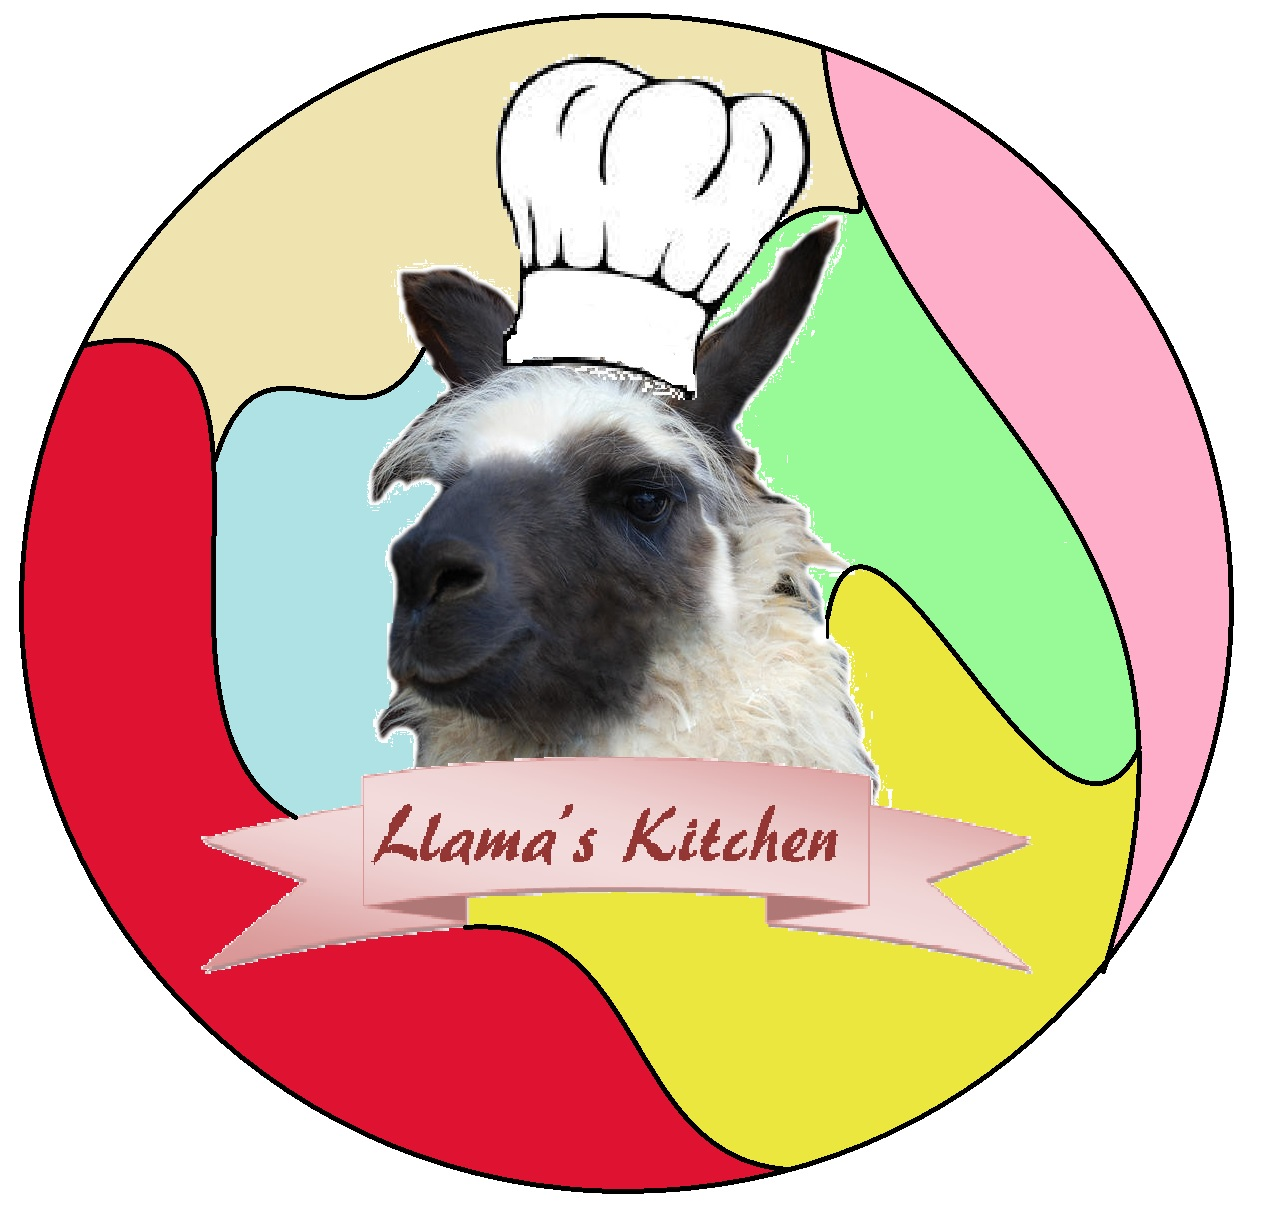 how to cook llama meat